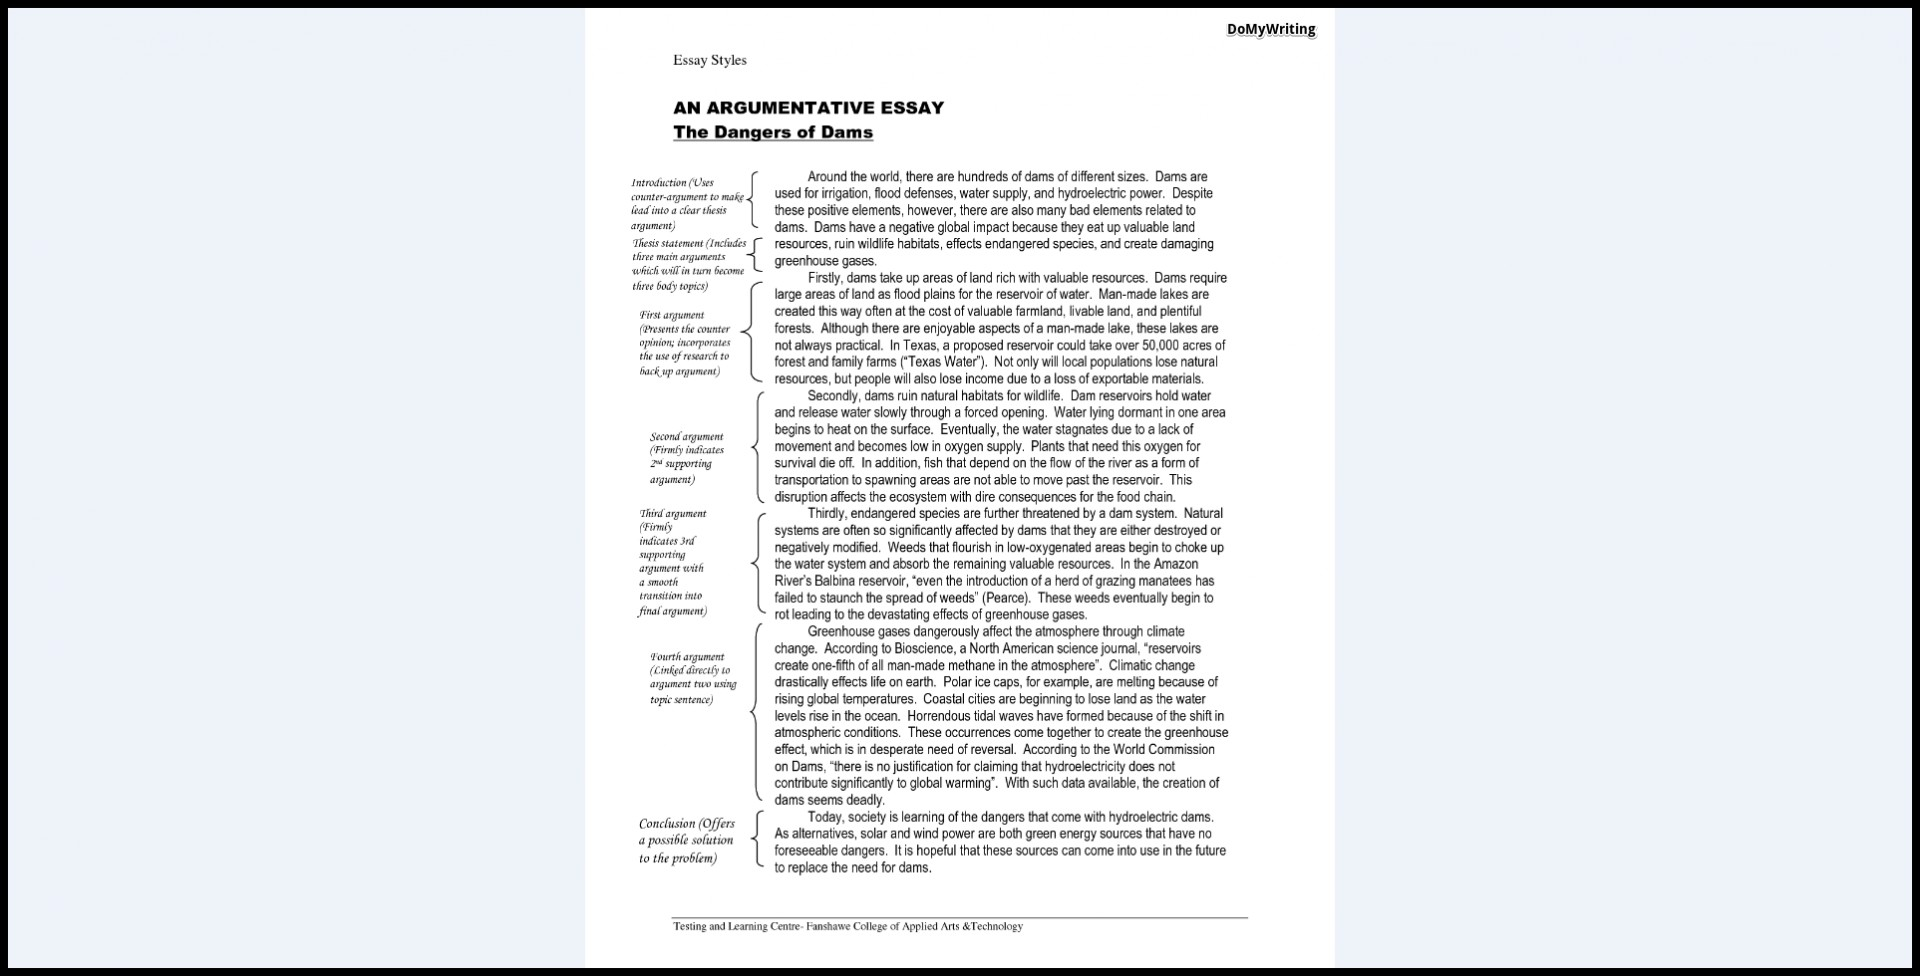 005 Topic For Argumentative Essays Stupendous Essay Topics Middle School Students 5th Grade With Articles 1920